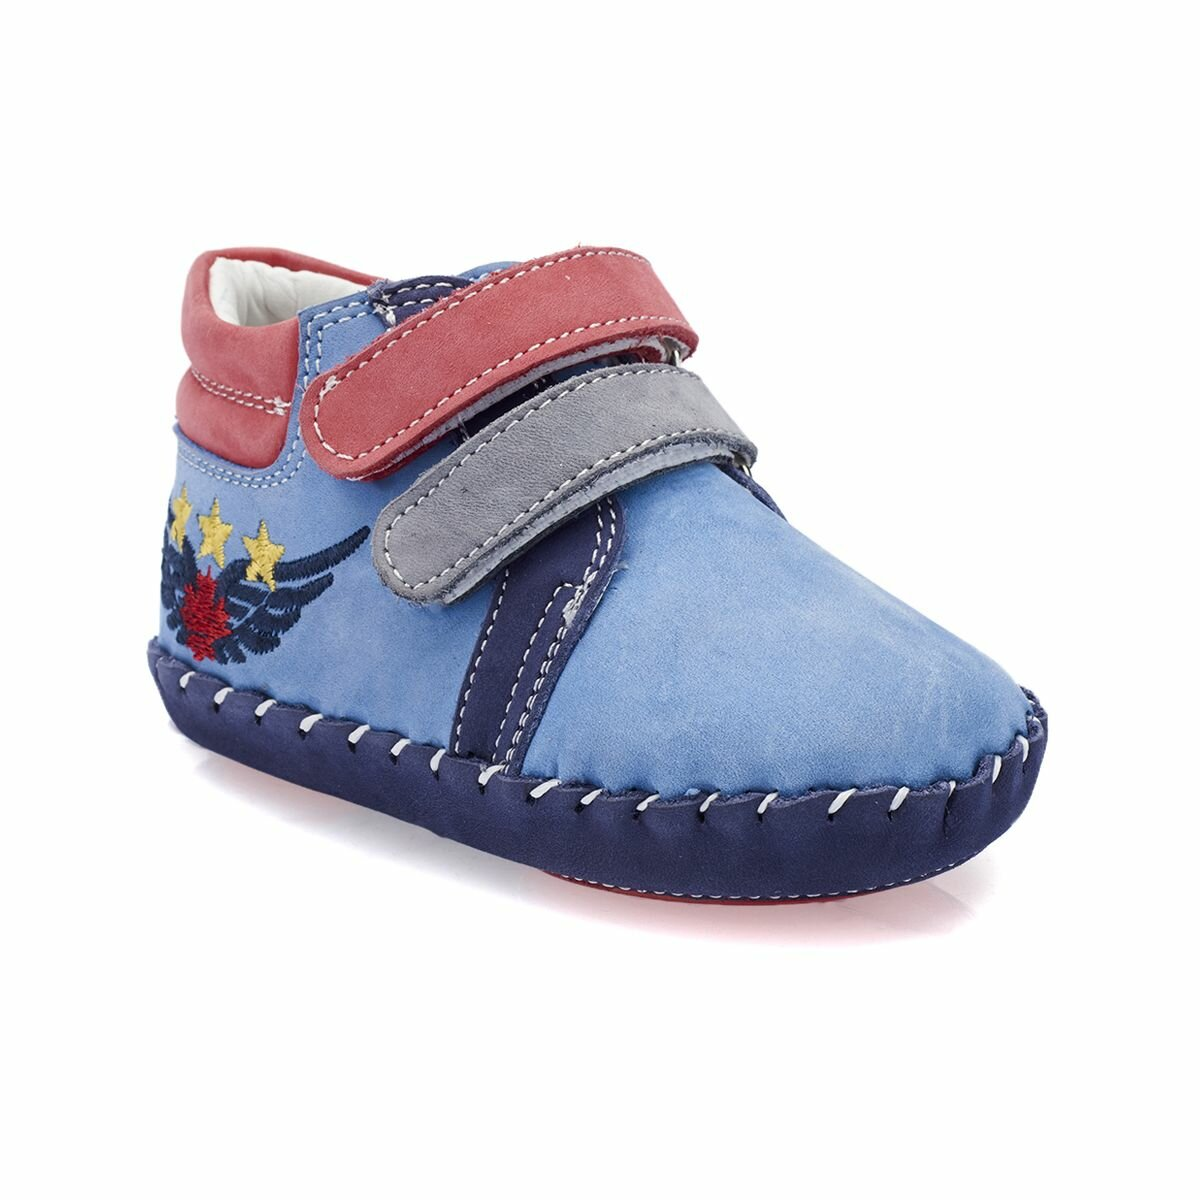 FLO 82.510531.I Blue Male Child Boots Polaris